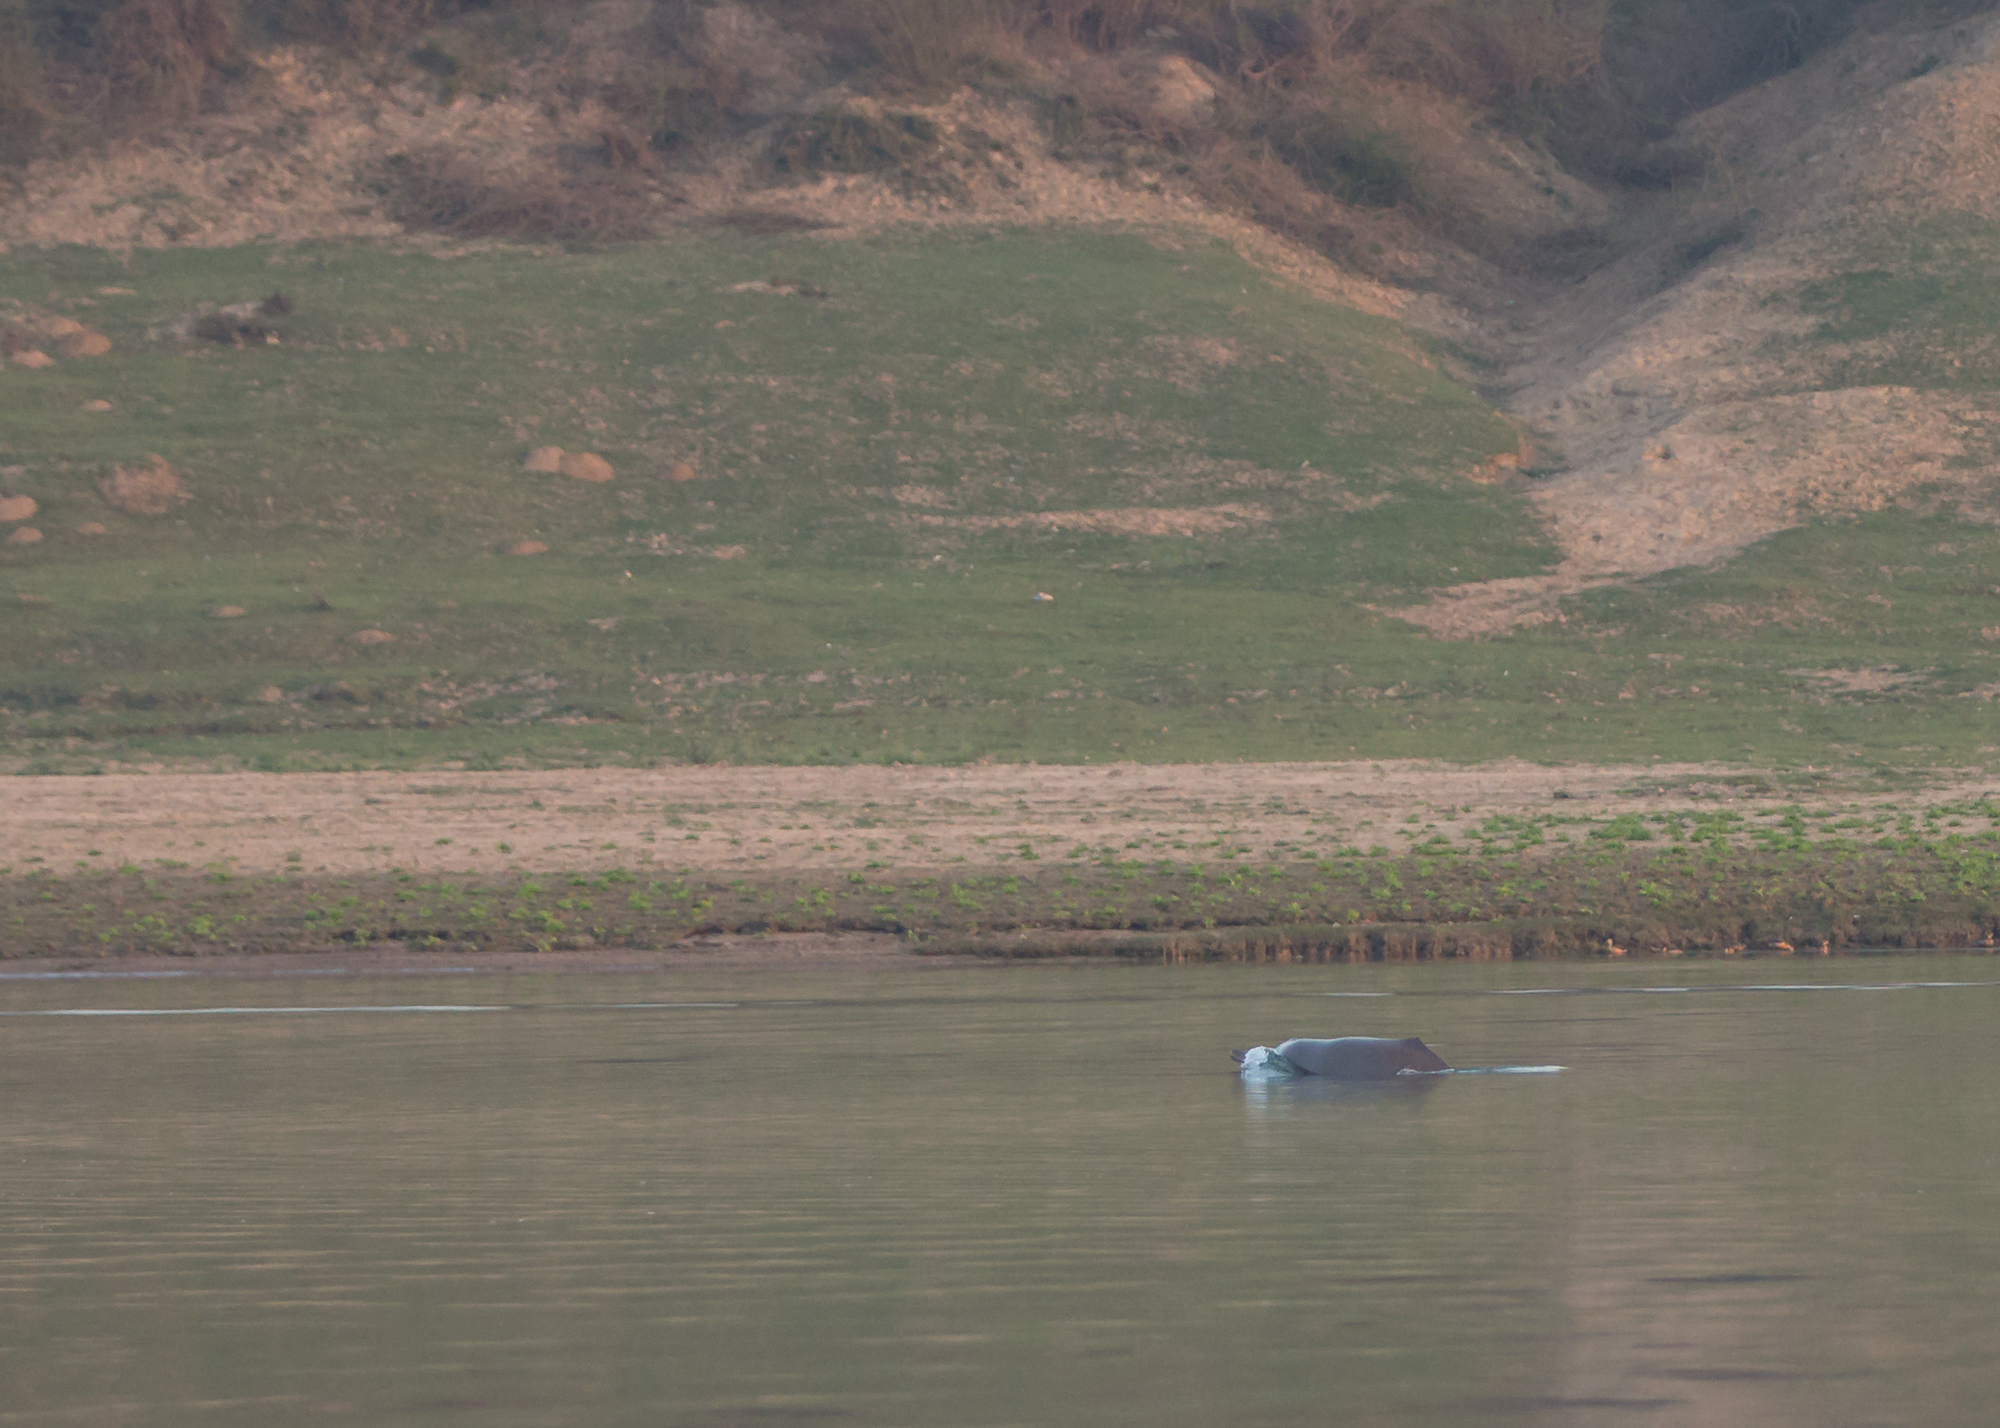 Another brief glimpse of a Ganges River Dolphin, Chambal River